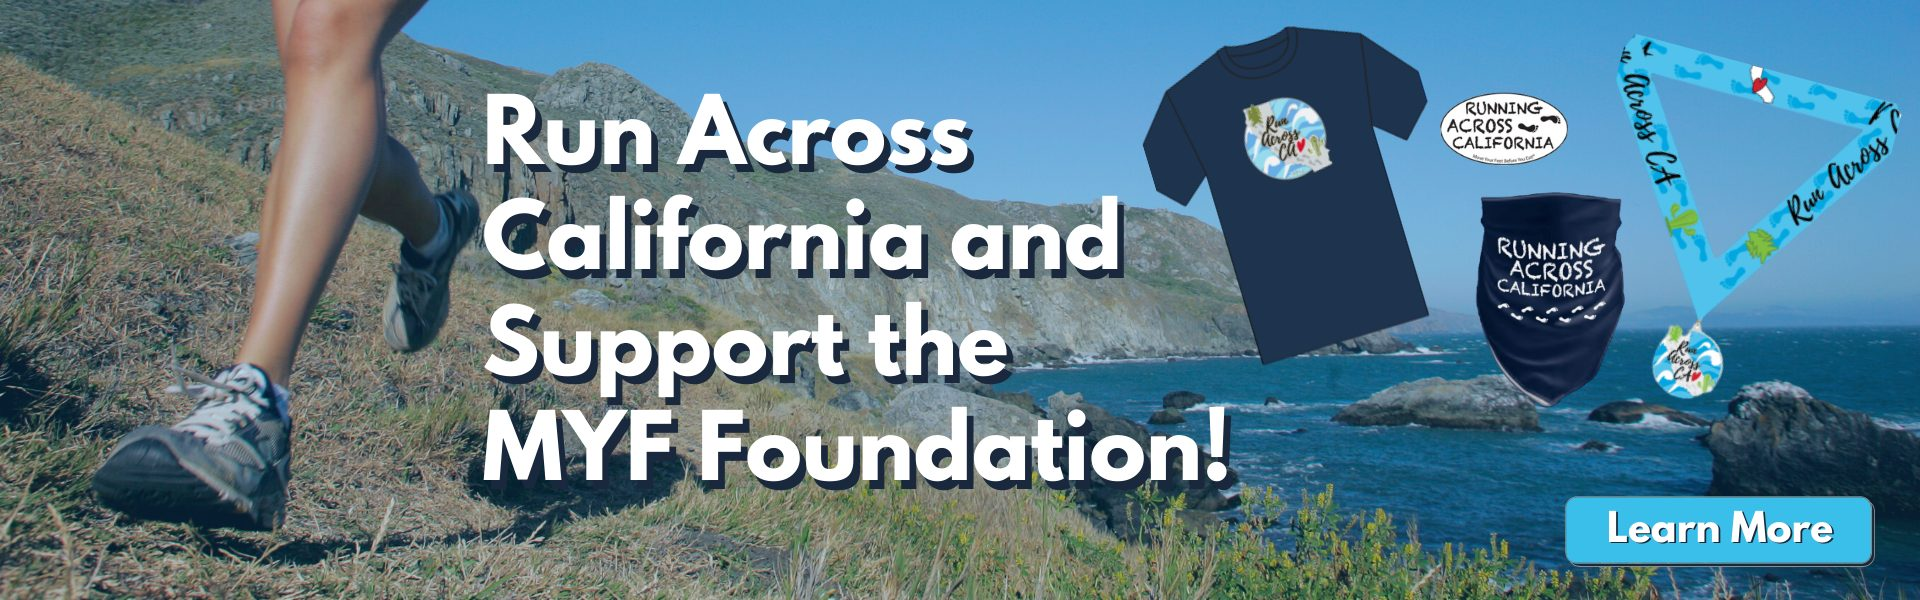 Run Across California and support the MYF Foundation